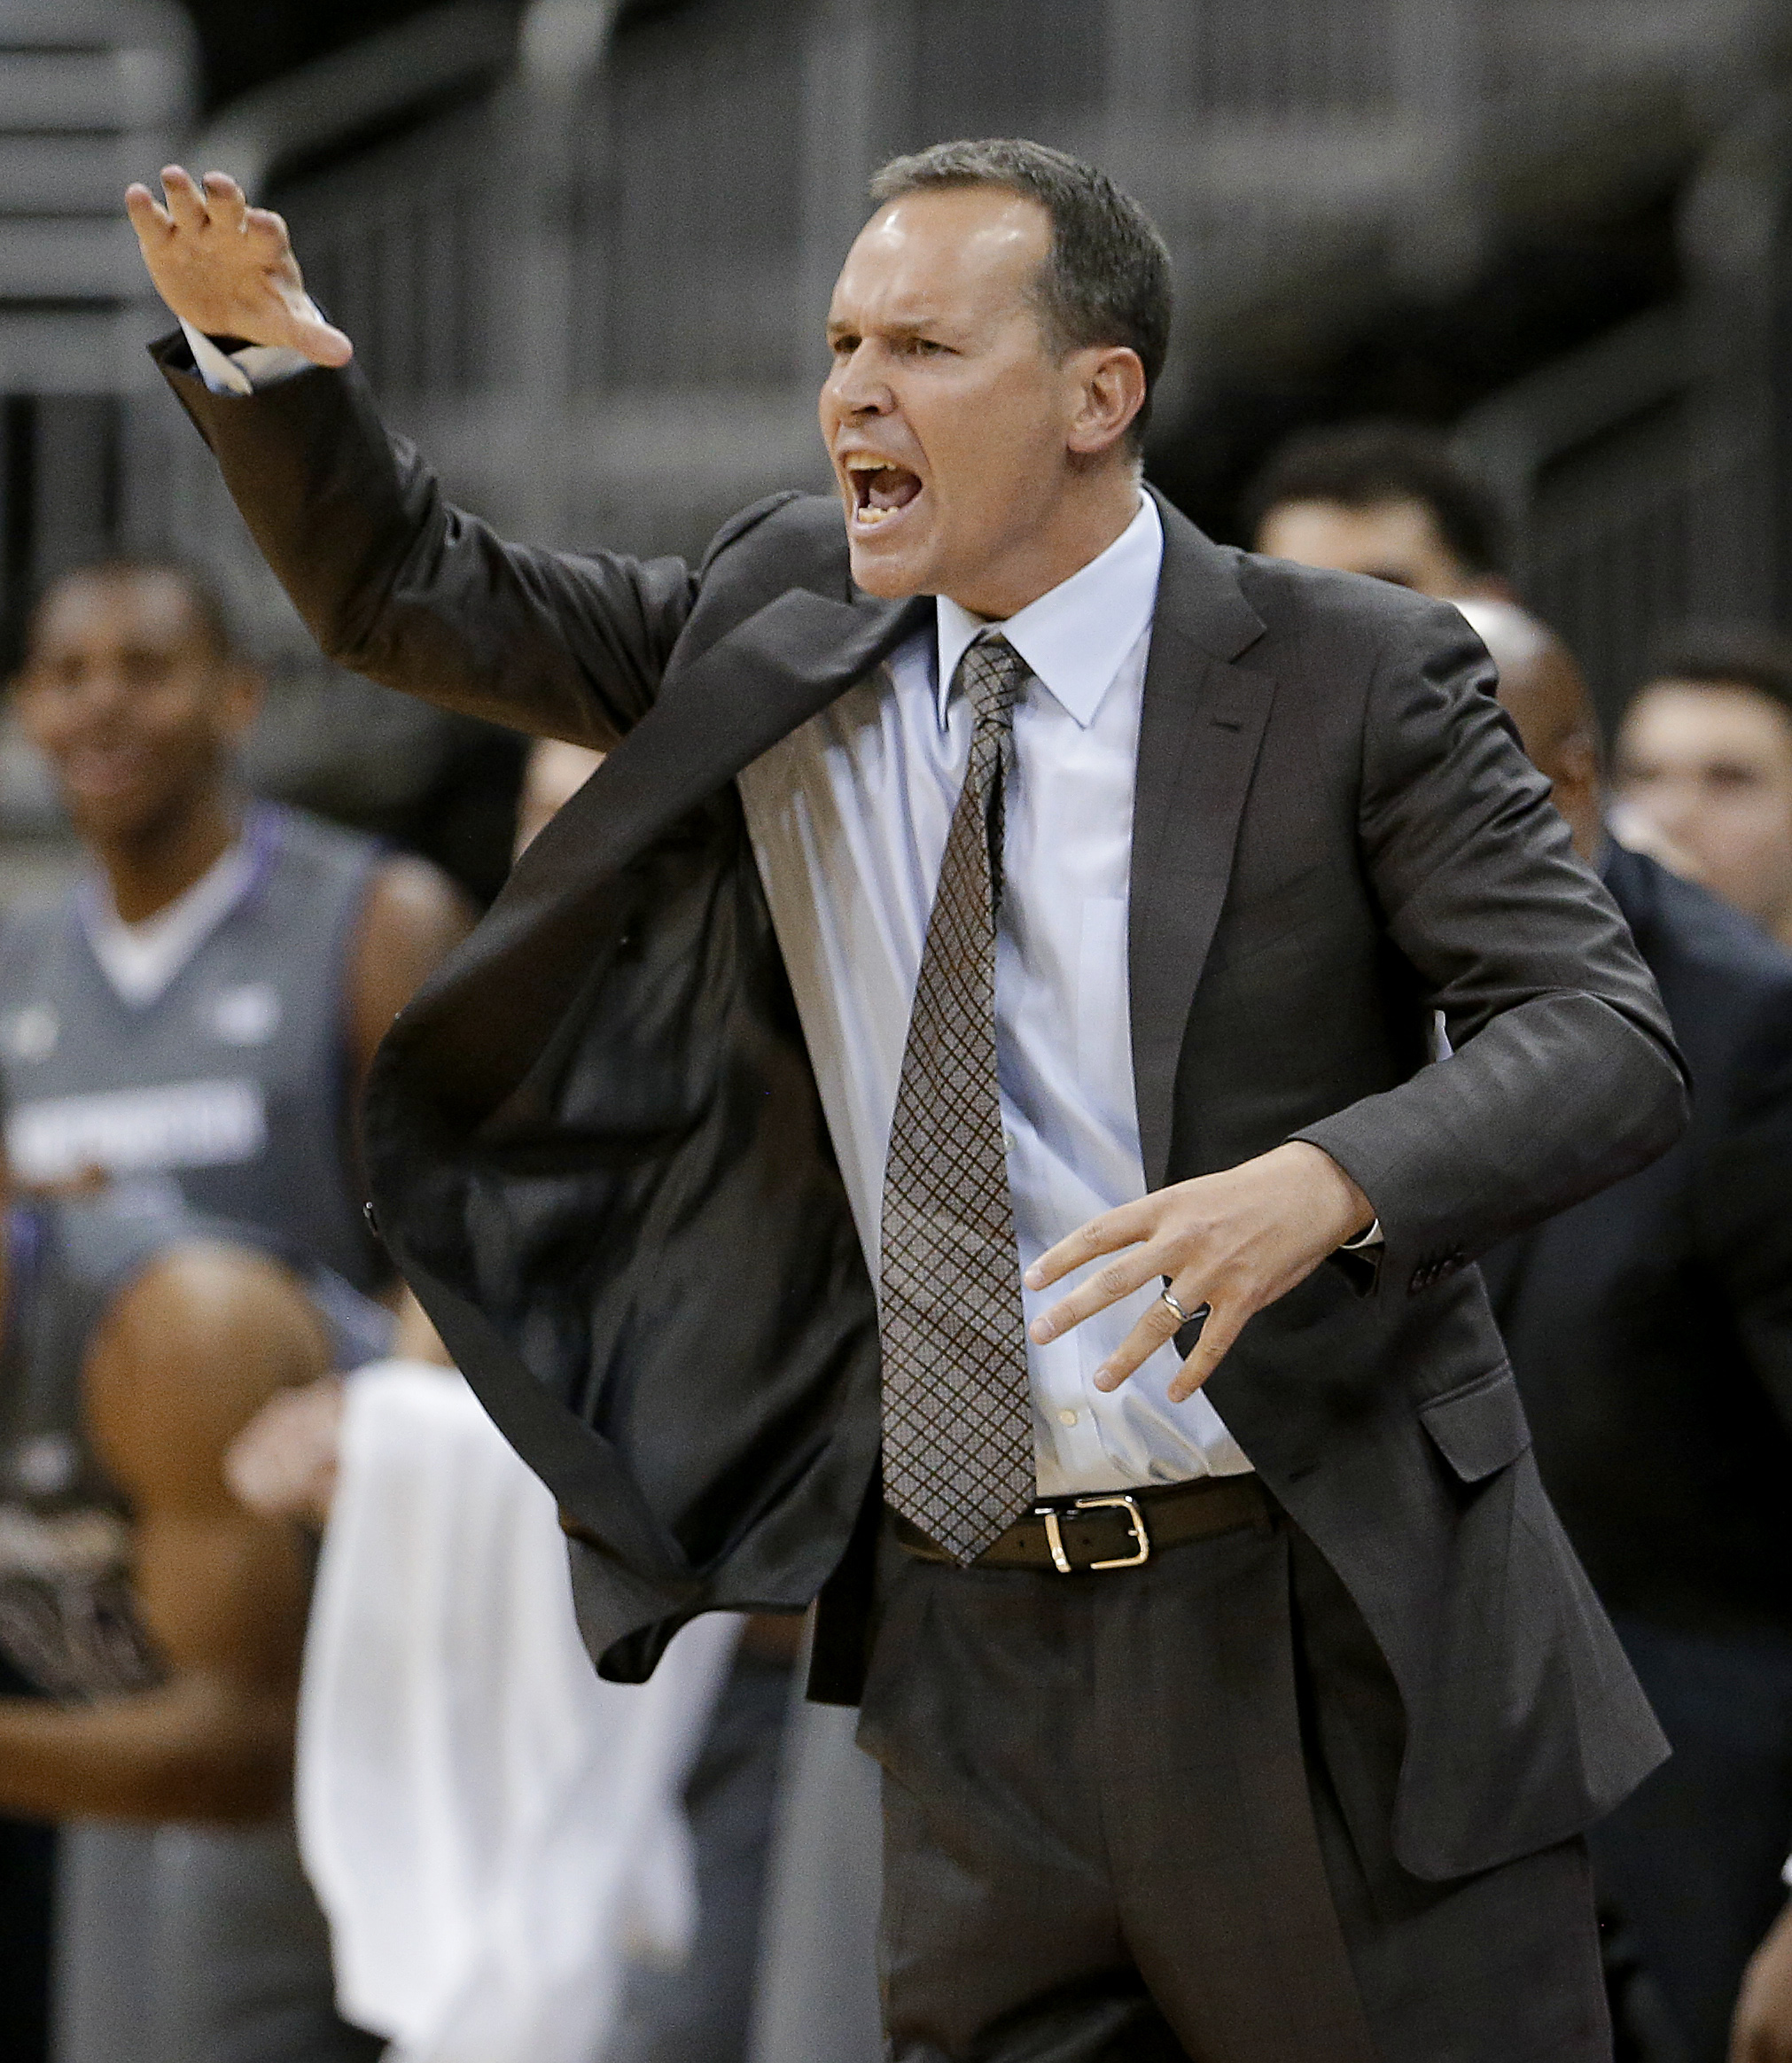 Northwestern coach Chris Collins talks to his players during the first half of an NCAA college basketball game against Missouri on Tuesday, Nov. 24, 2015, in Kansas City, Mo. (AP Photo/Charlie Riedel)